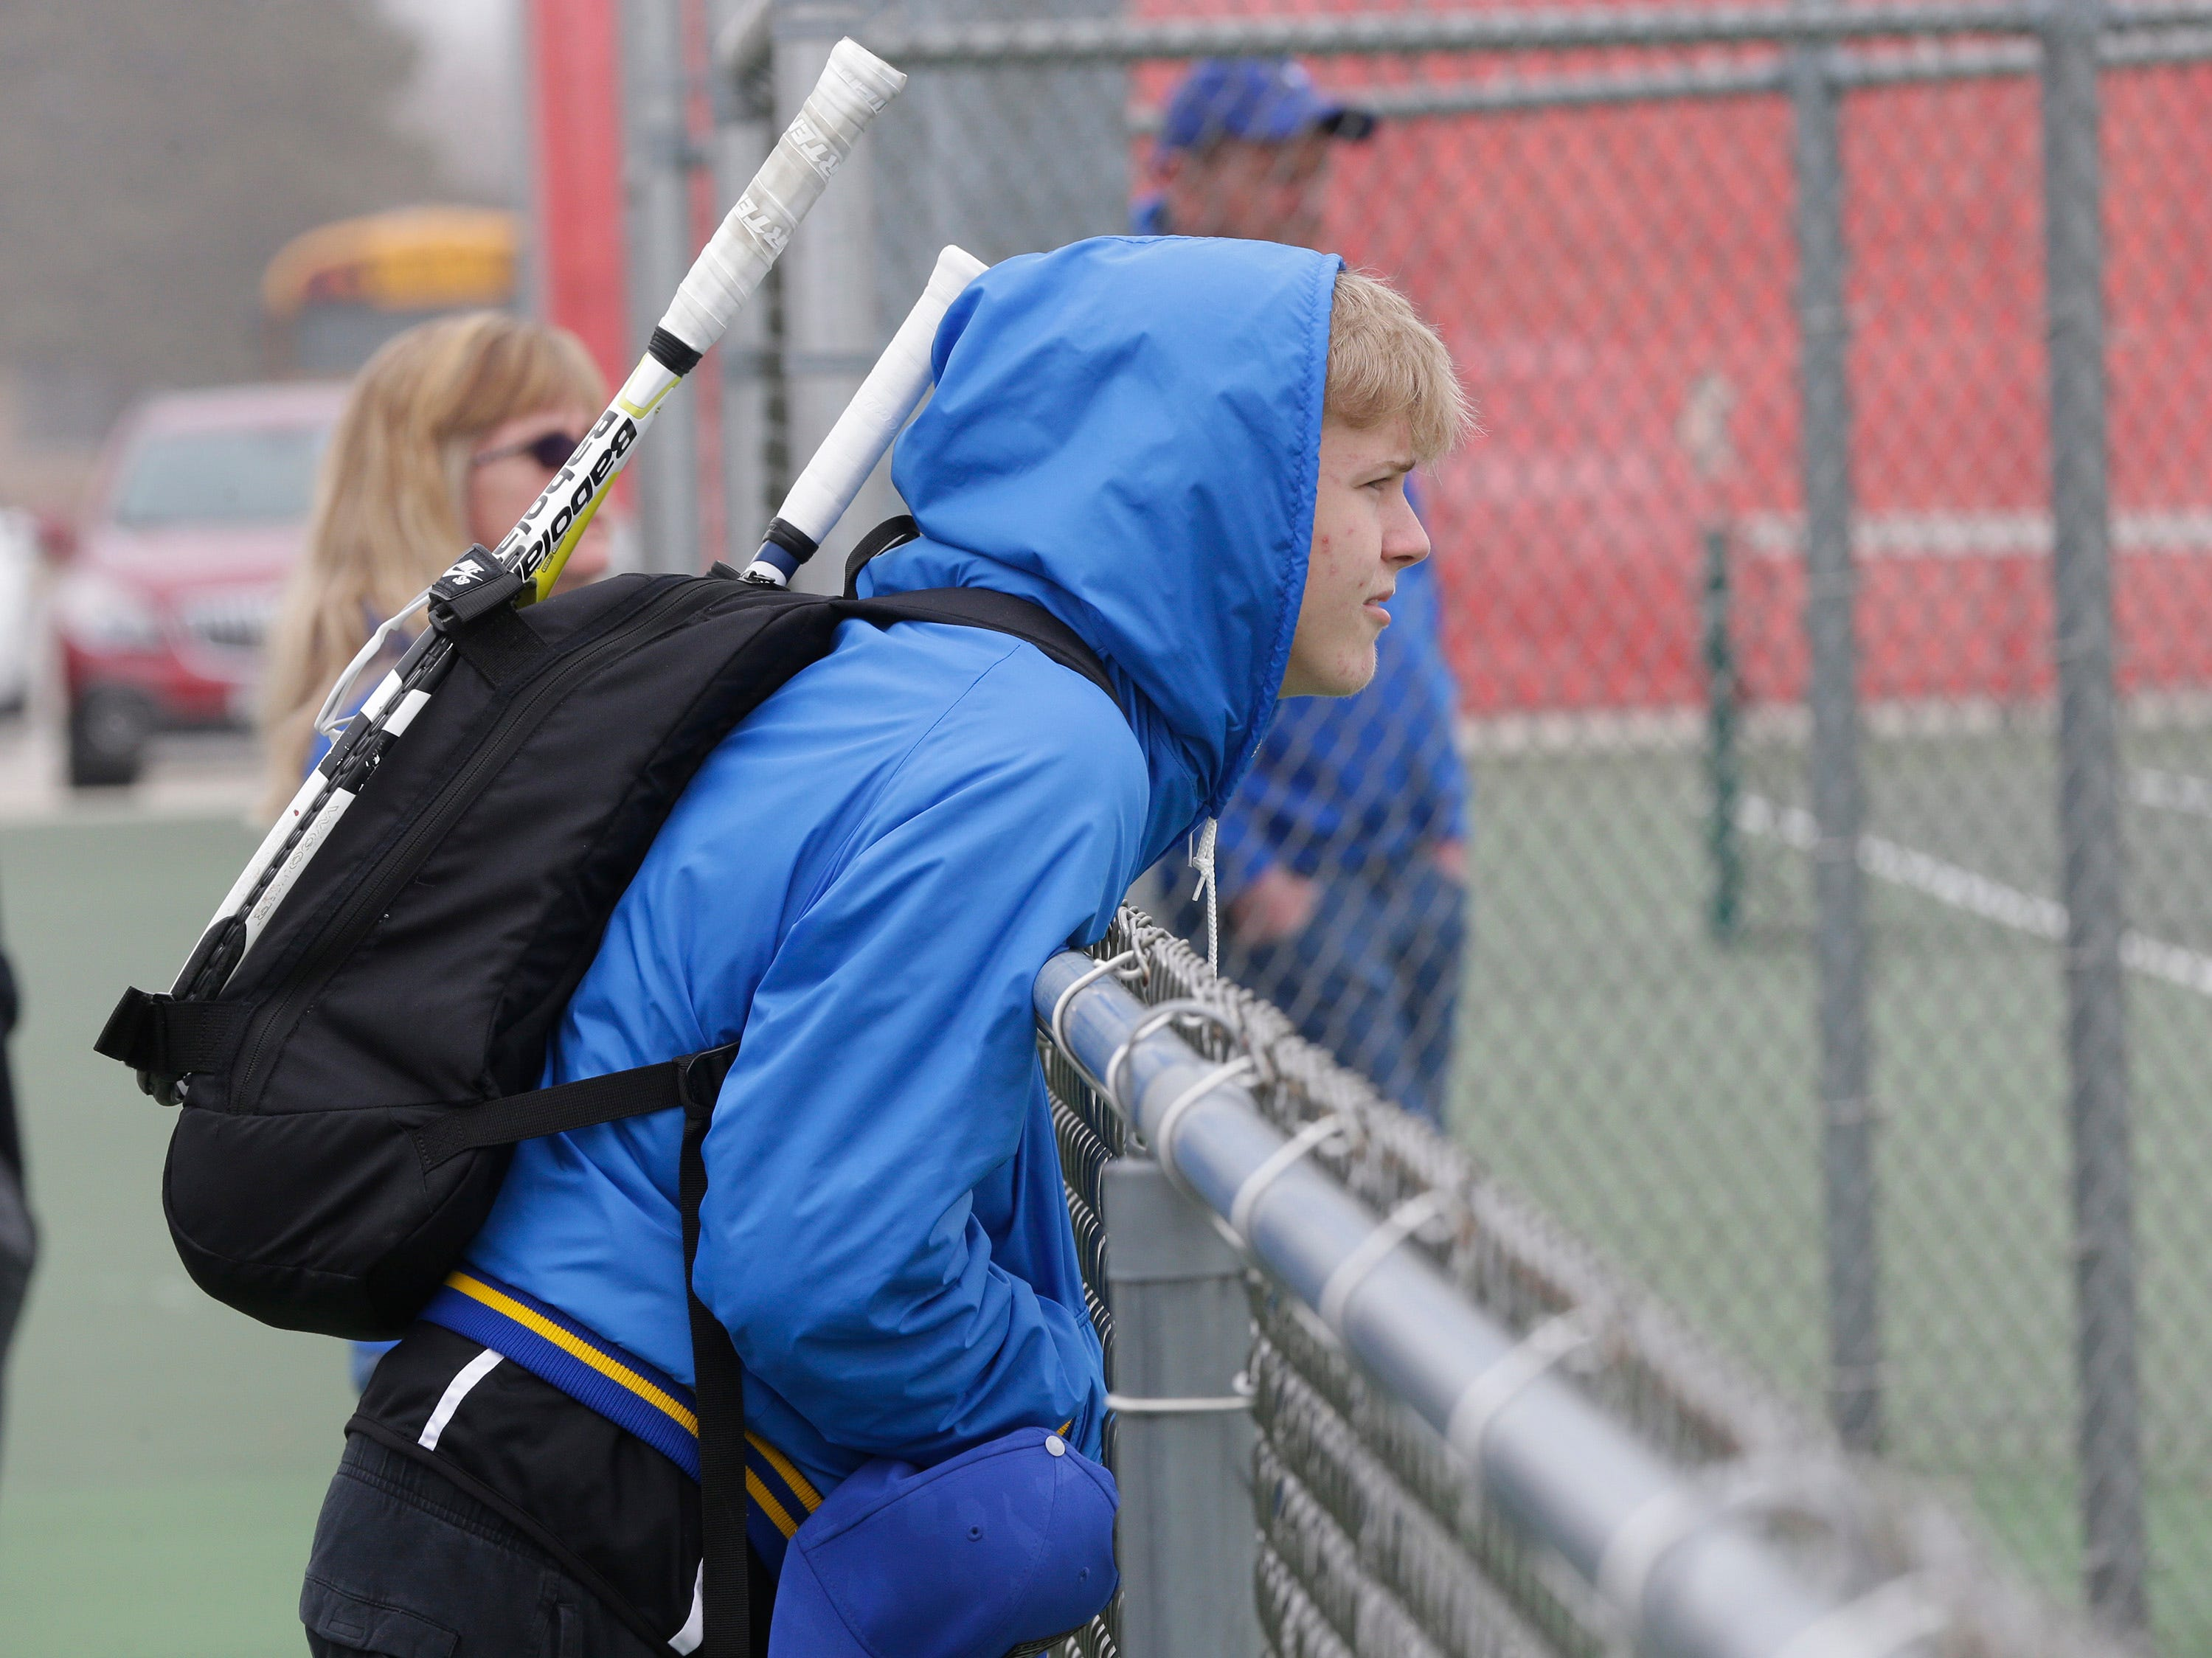 Howards Grove's Austin Paczke watches tennis action before his turn on the courts at Sheboygan South, Saturday, April 6, 2019, in Sheboygan, Wis.